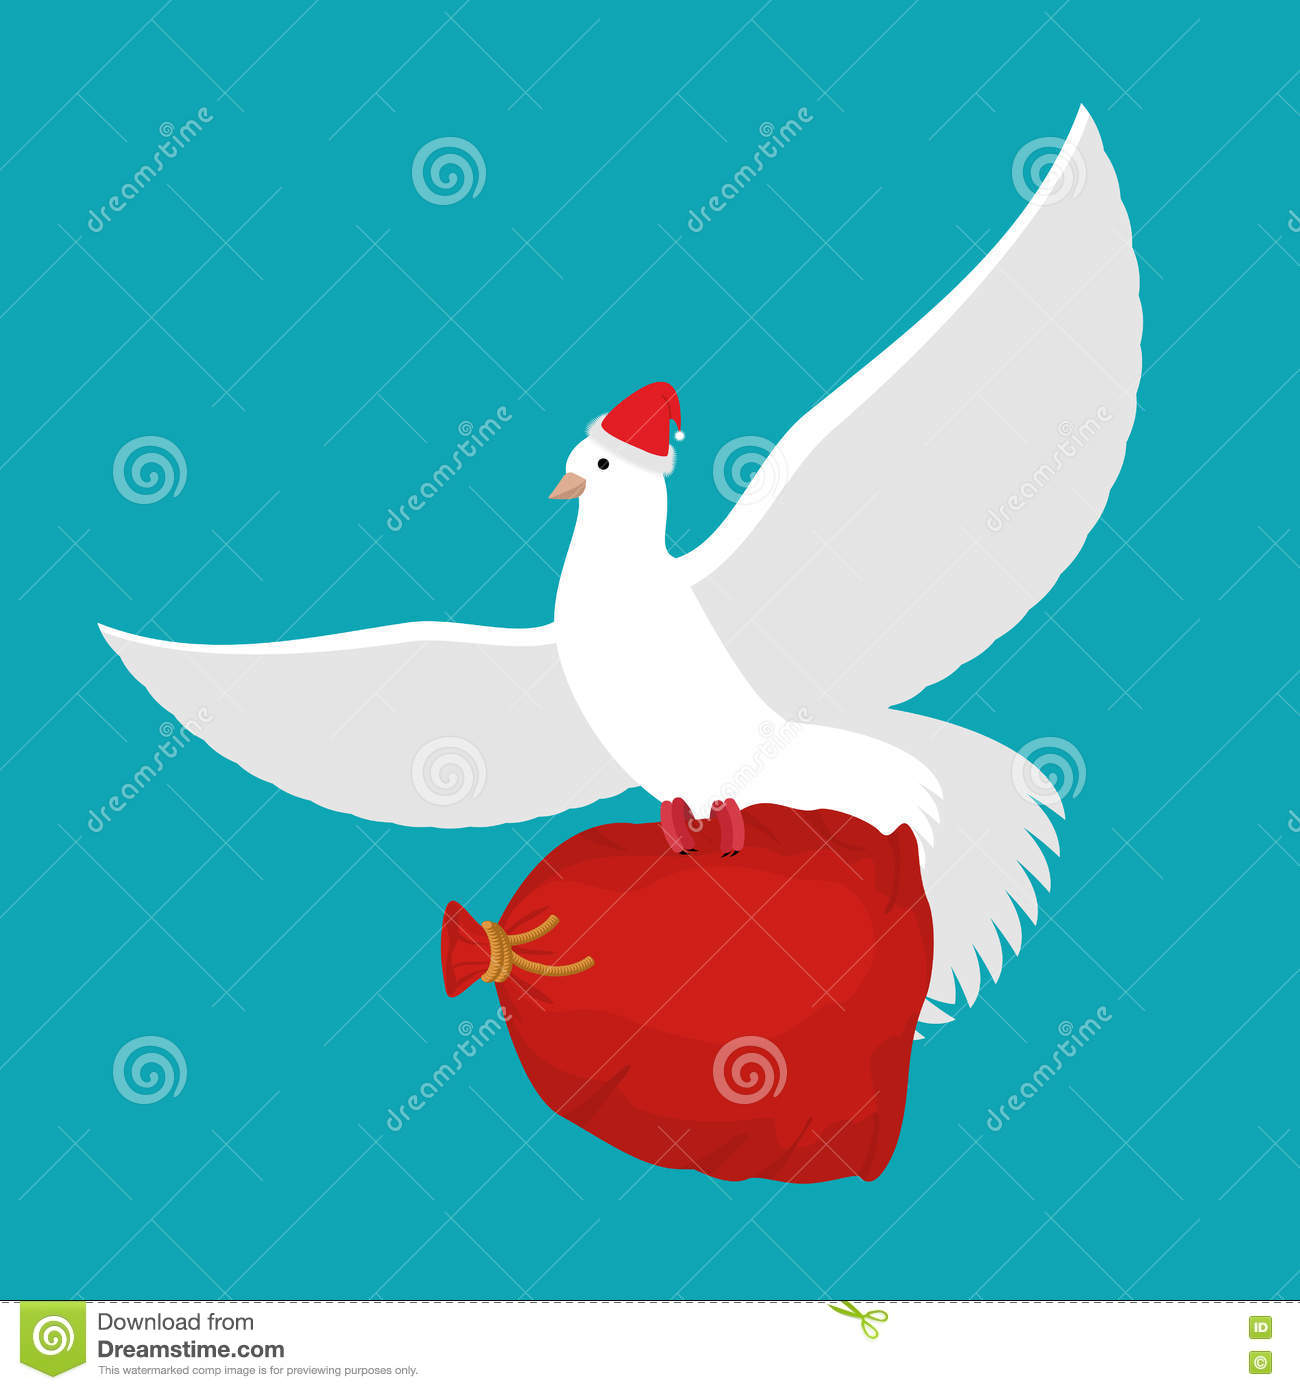 Pigeon Santa Claus carries sack with gifts. Red bag for toys and